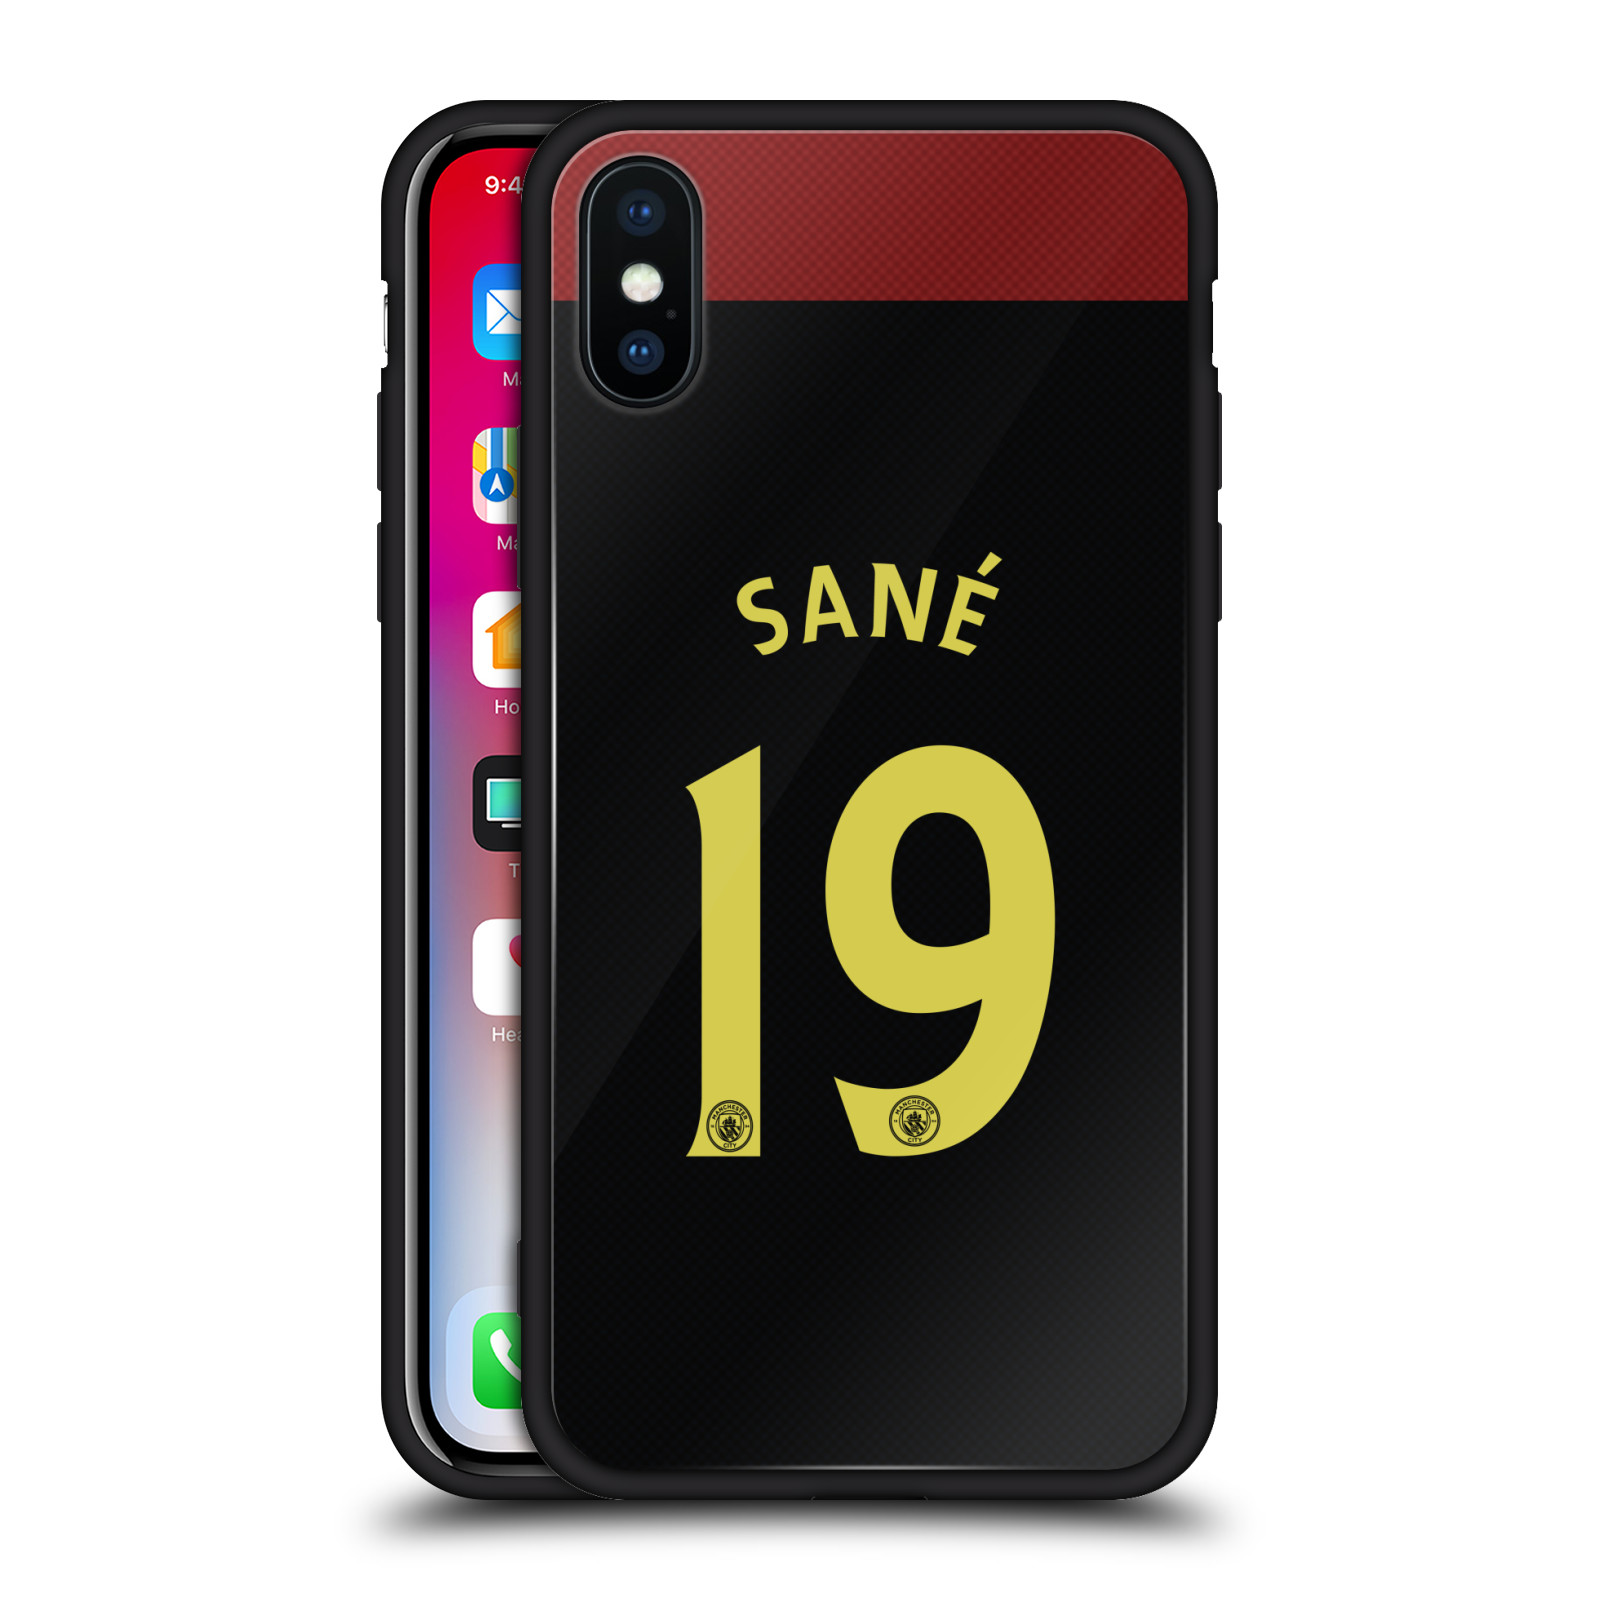 MAN-CITY-FC-AWAY-KIT-2016-17-2-NOIR-ARRIERE-EN-VERRE-HYBRIDE-POUR-iPHONE-PHONES